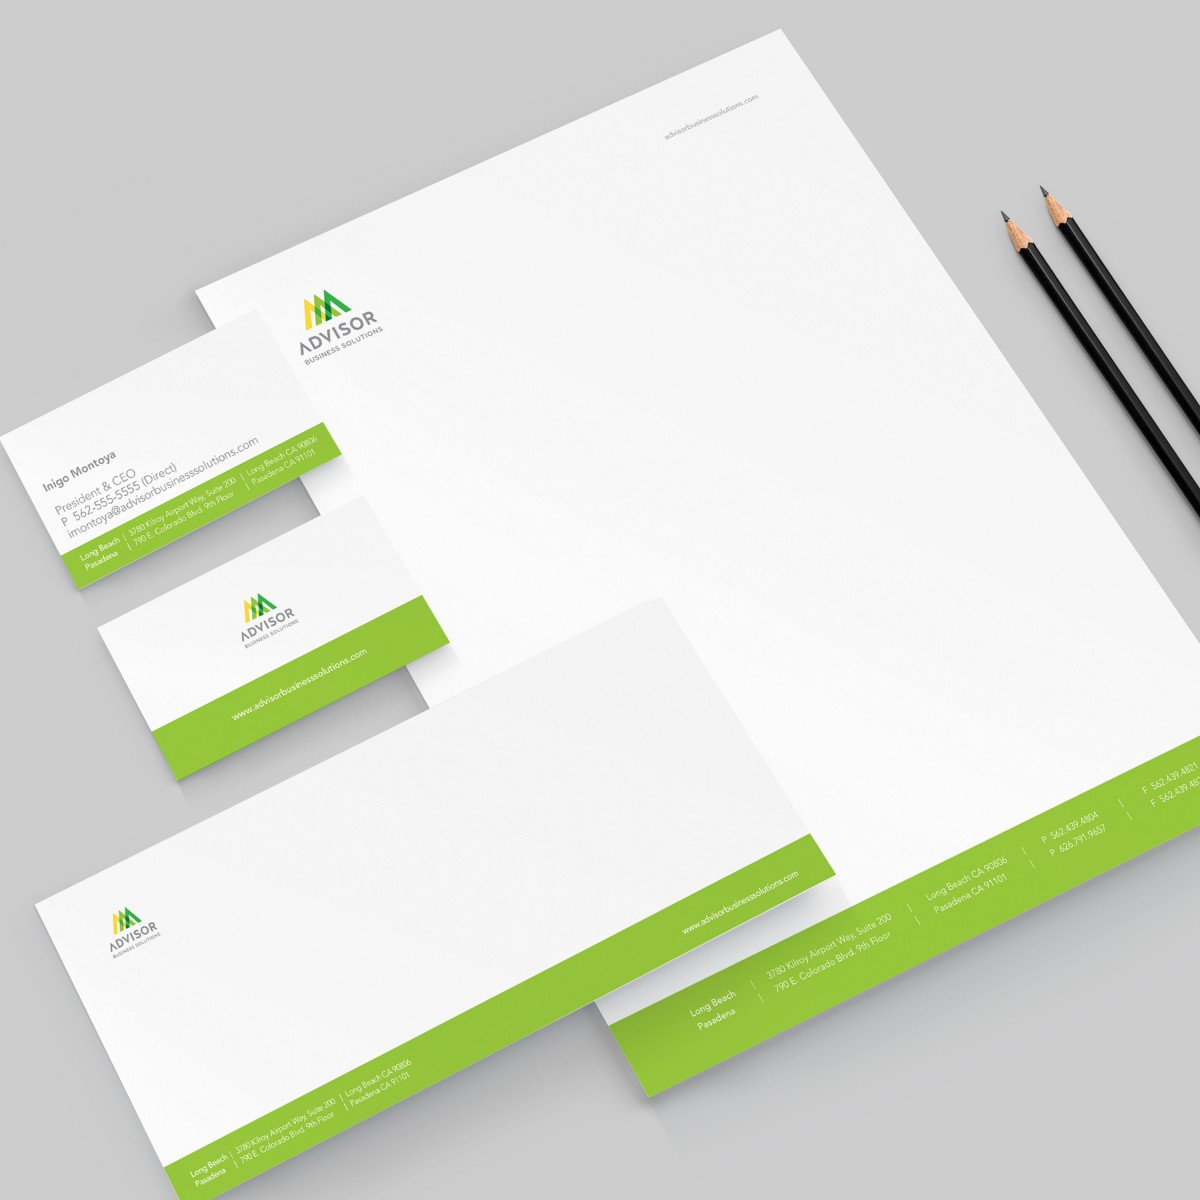 Advisor Business Solutions stationery system